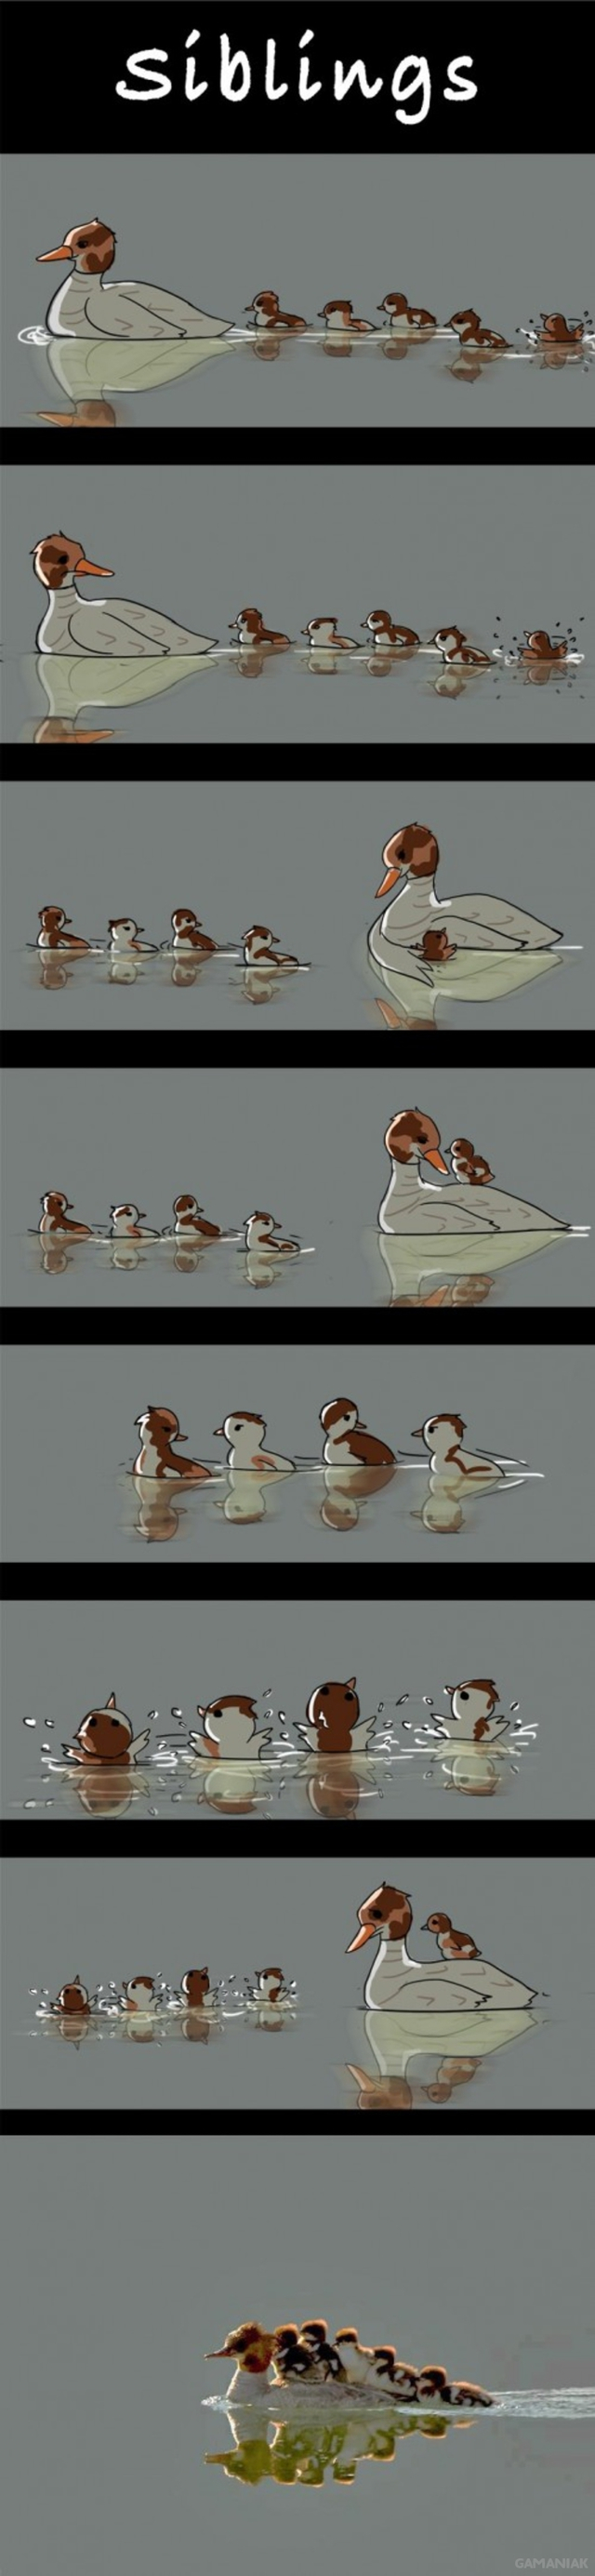 jalousie-freres-soeurs-illustree-canards